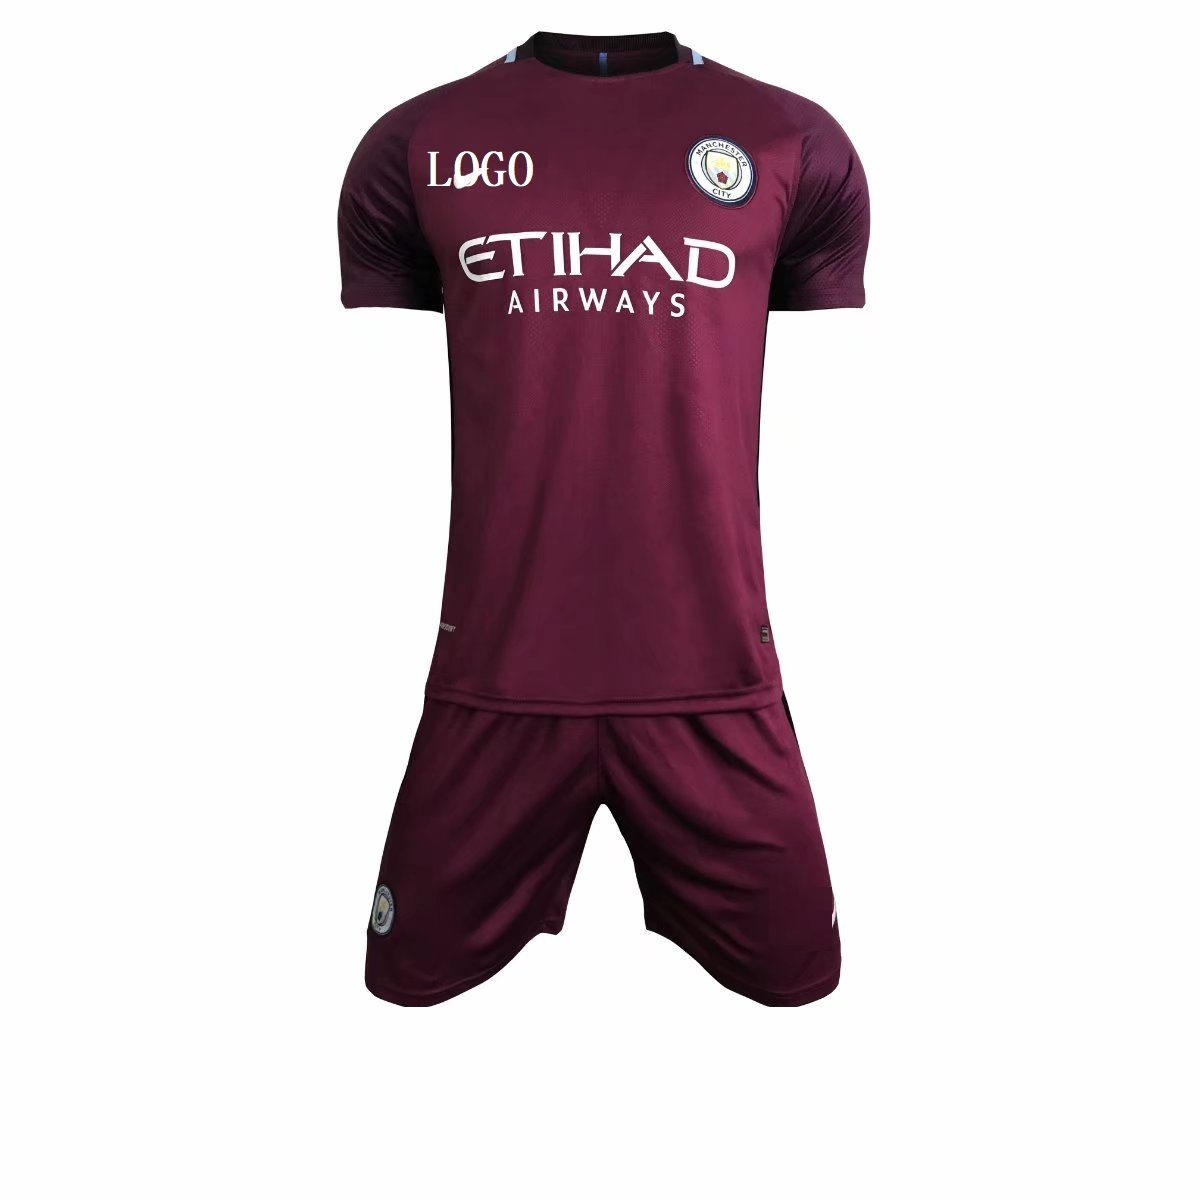 free shipping ea6ee 151a5 2017/18 Adult Manchester City Away Purple Soccer Jersey Uniforms Men  uniformes de futbol soccer soccer jerseys for sale